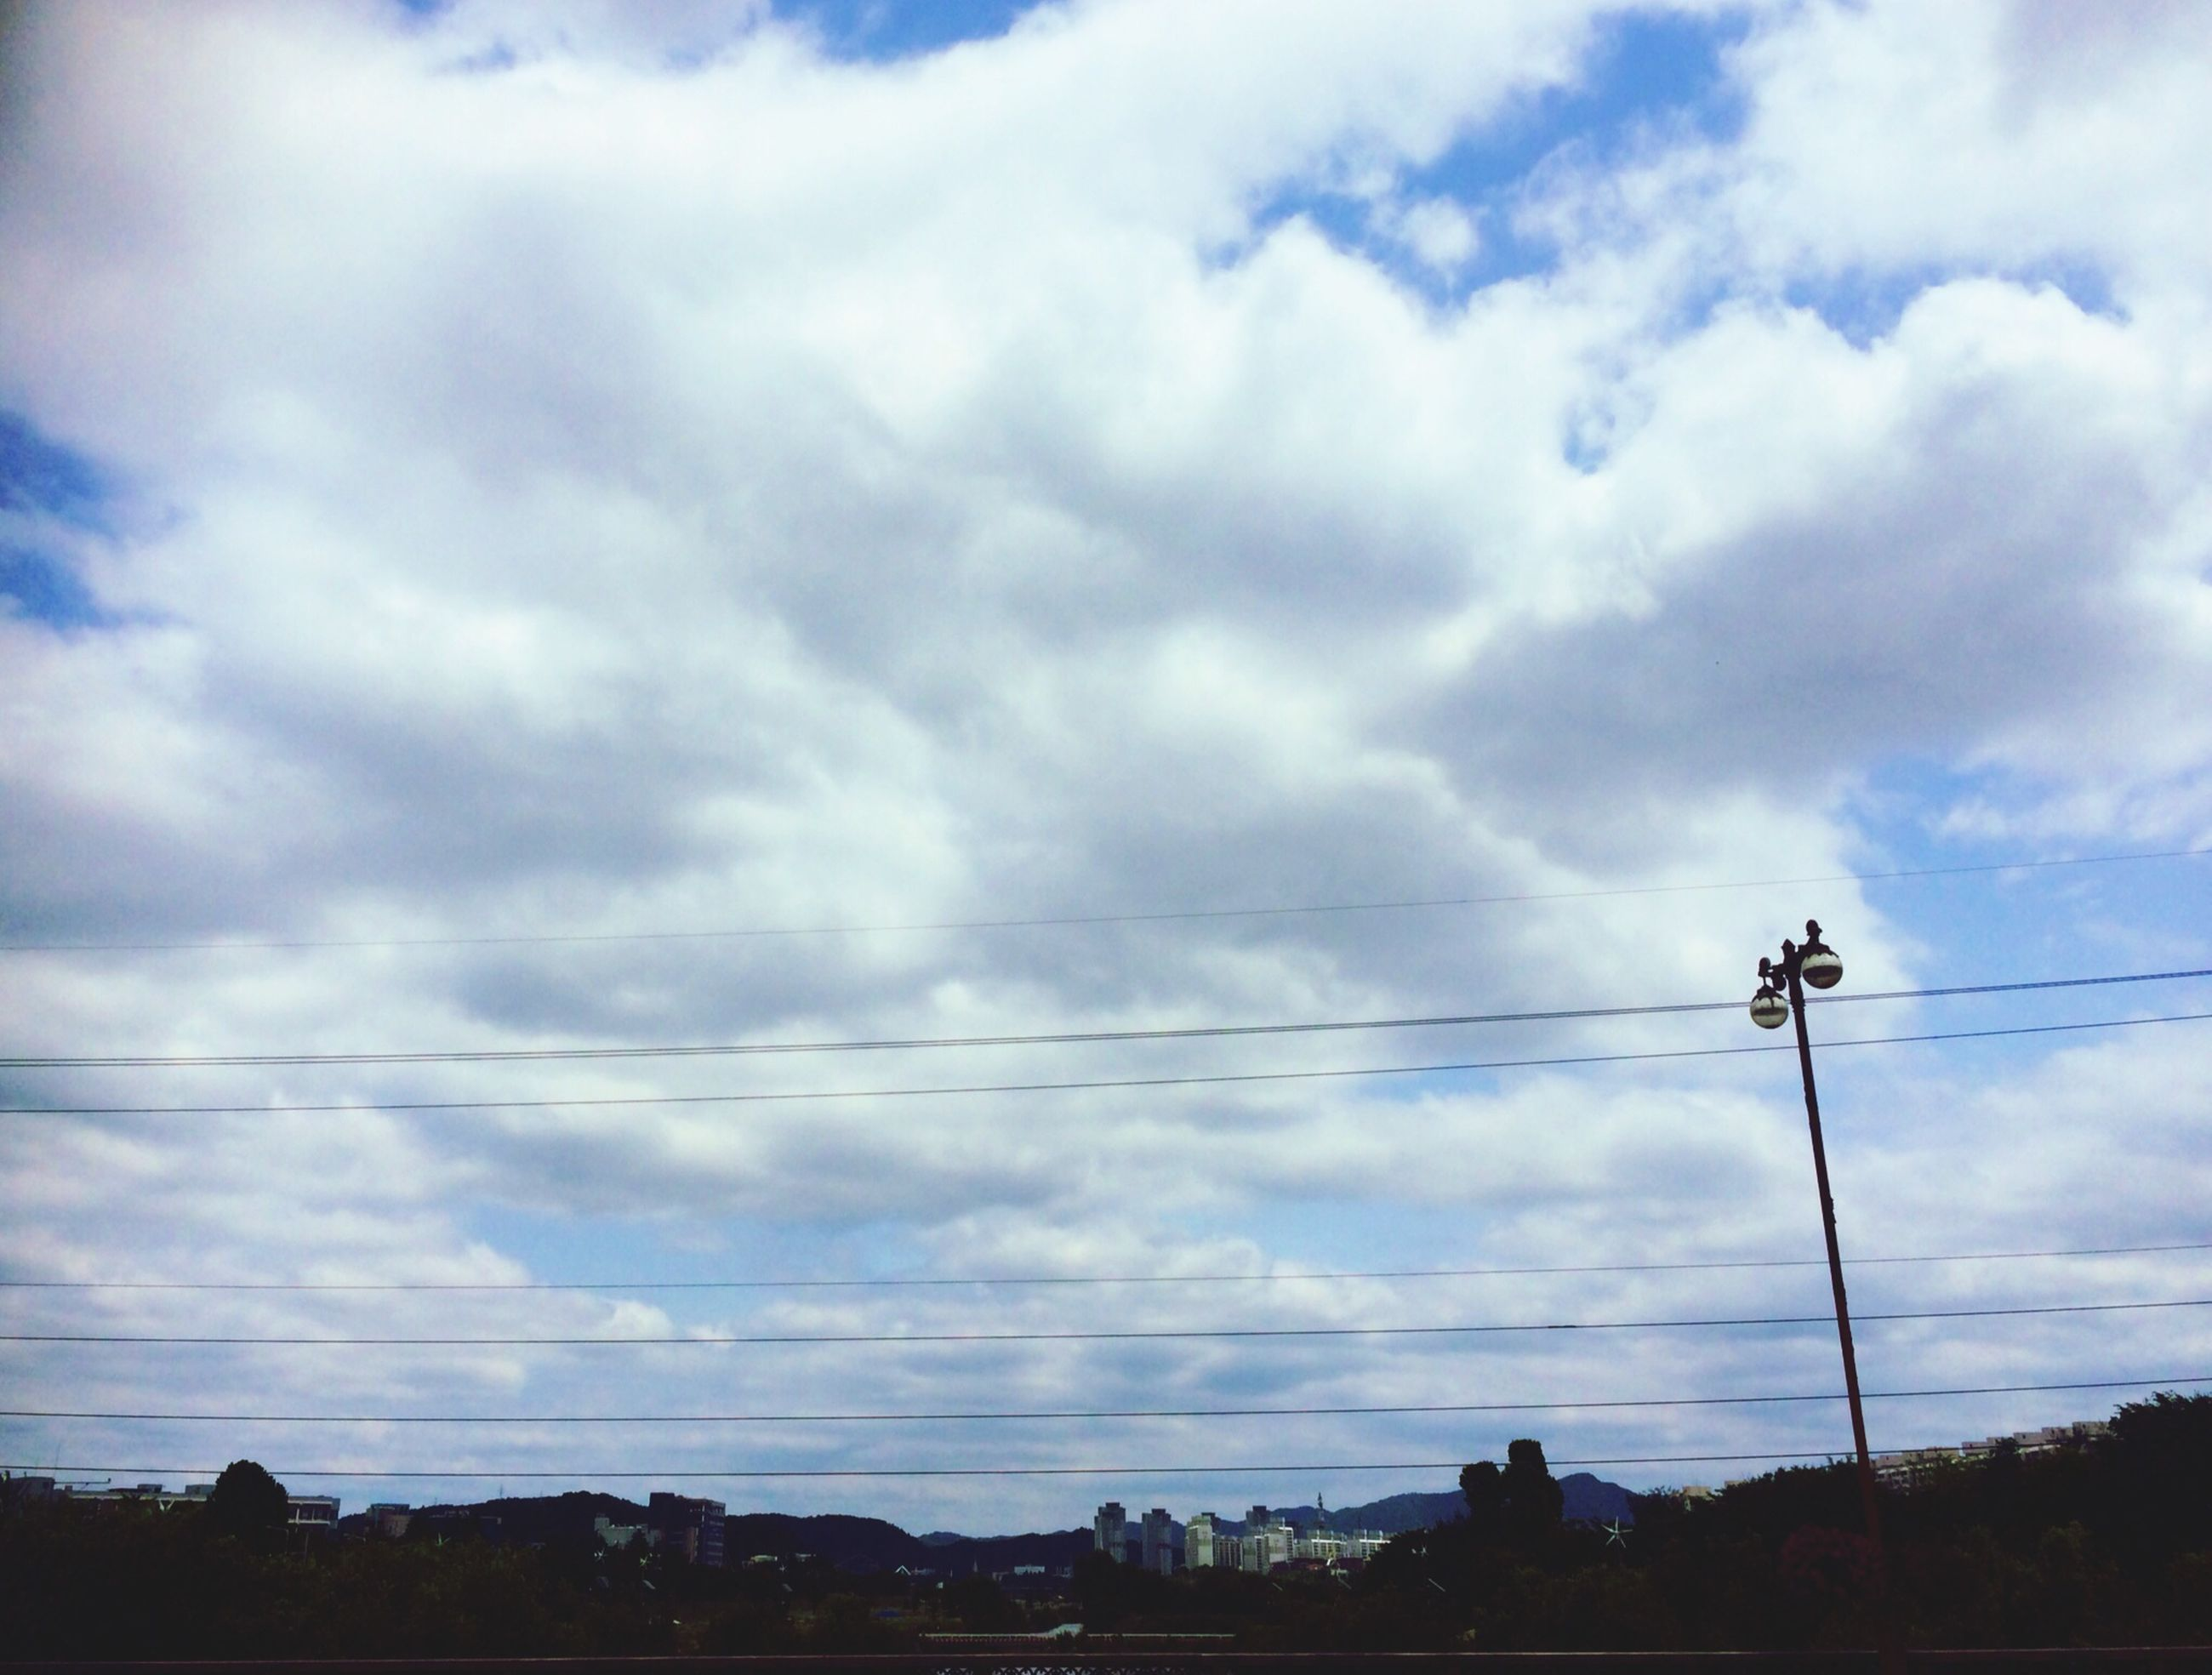 power line, electricity pylon, electricity, power supply, sky, cable, fuel and power generation, connection, low angle view, cloud - sky, cloudy, technology, power cable, cloud, silhouette, nature, outdoors, no people, telephone pole, tree